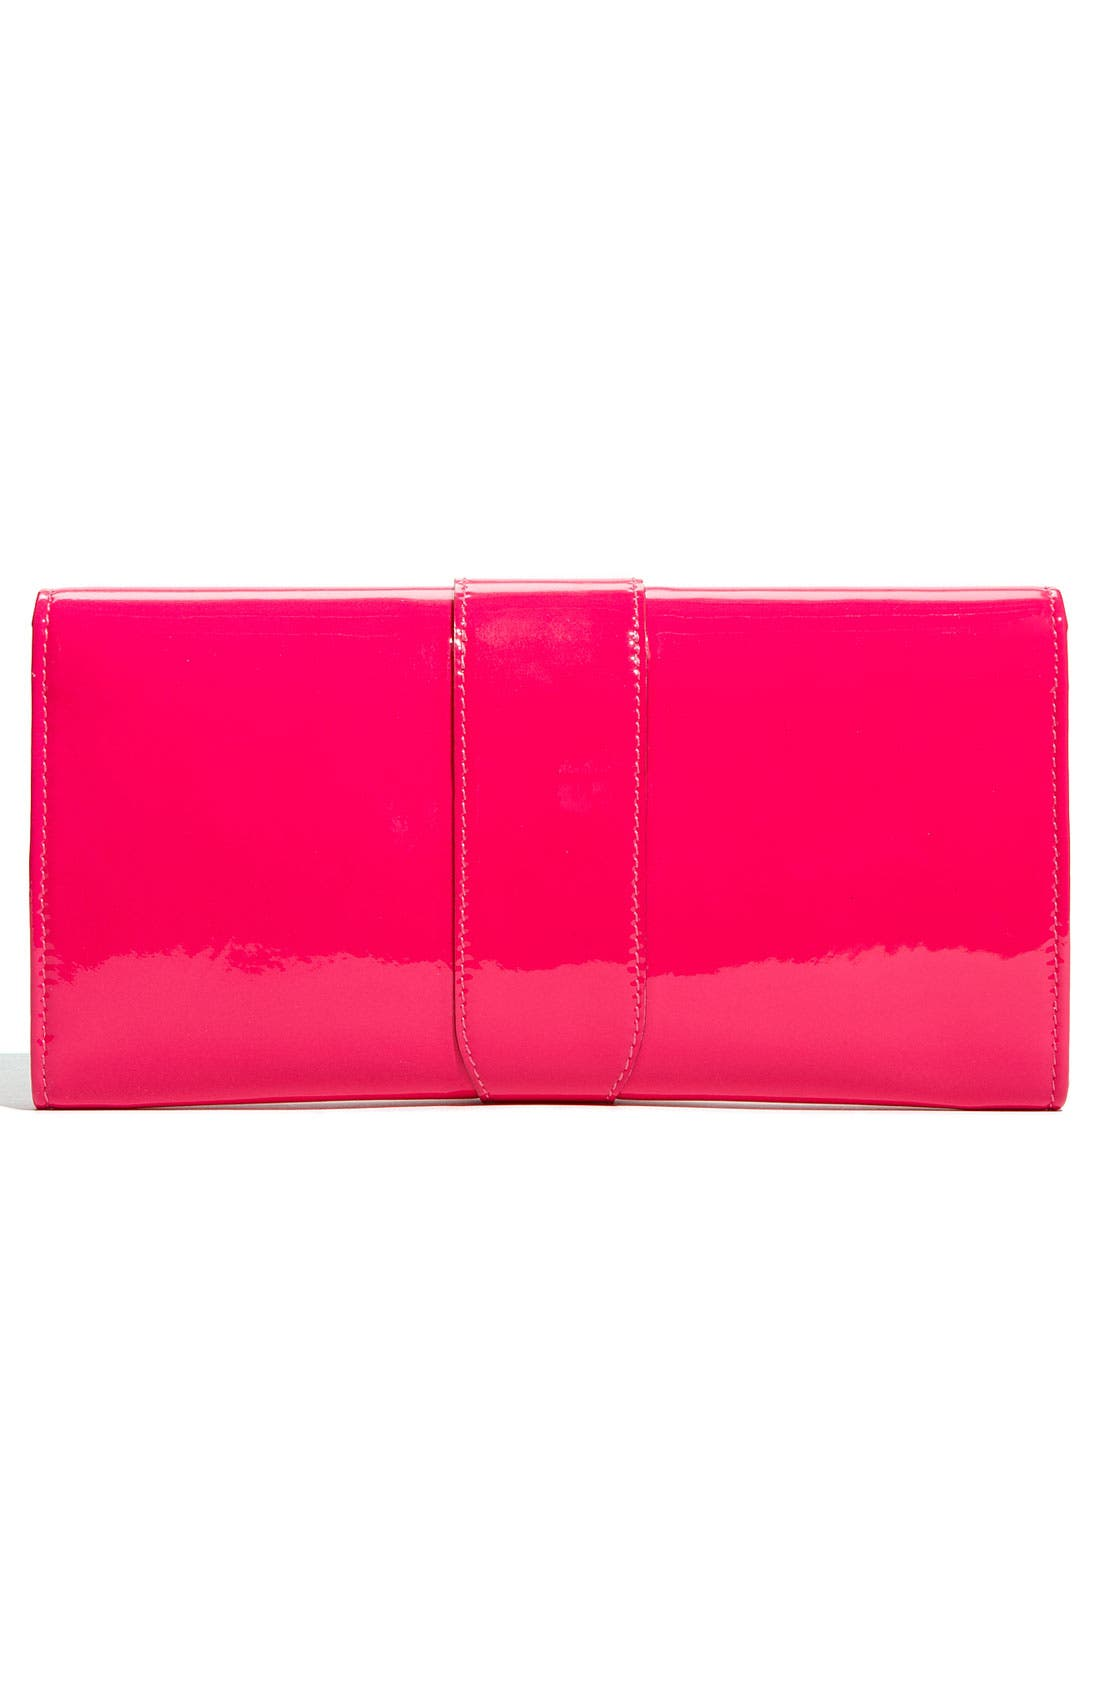 Alternate Image 4  - Jimmy Choo 'Ubai' Patent Leather Clutch